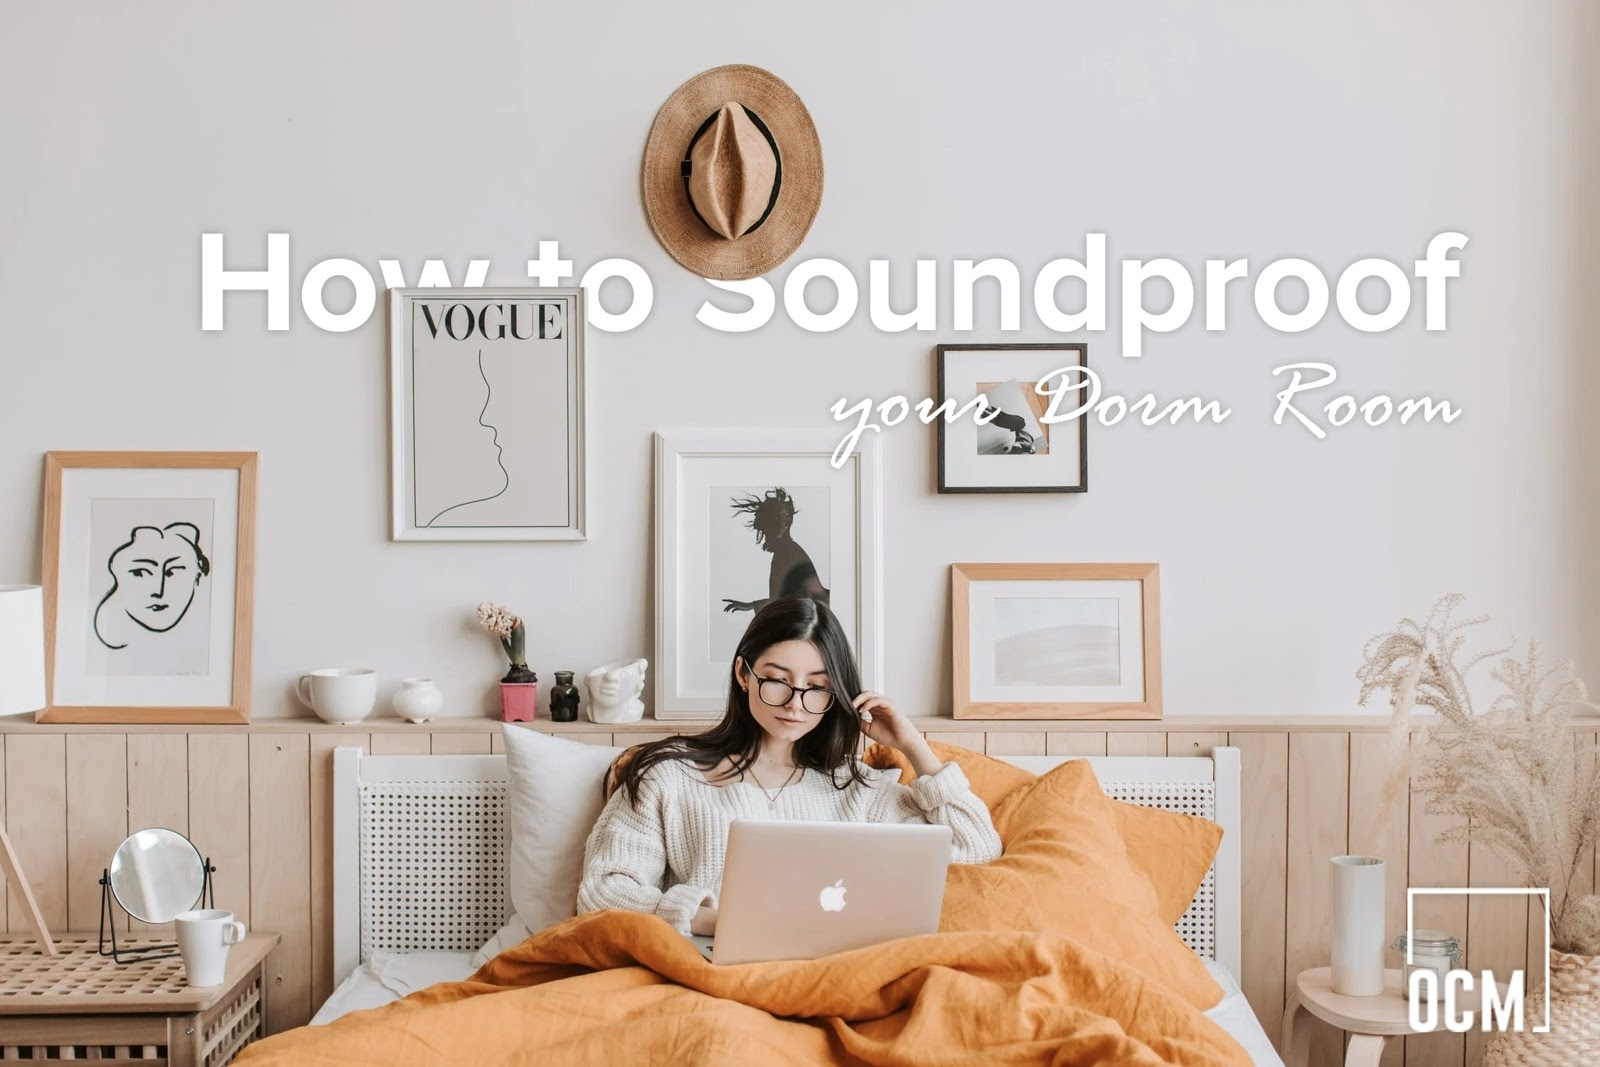 How to Soundproof your Dorm Room